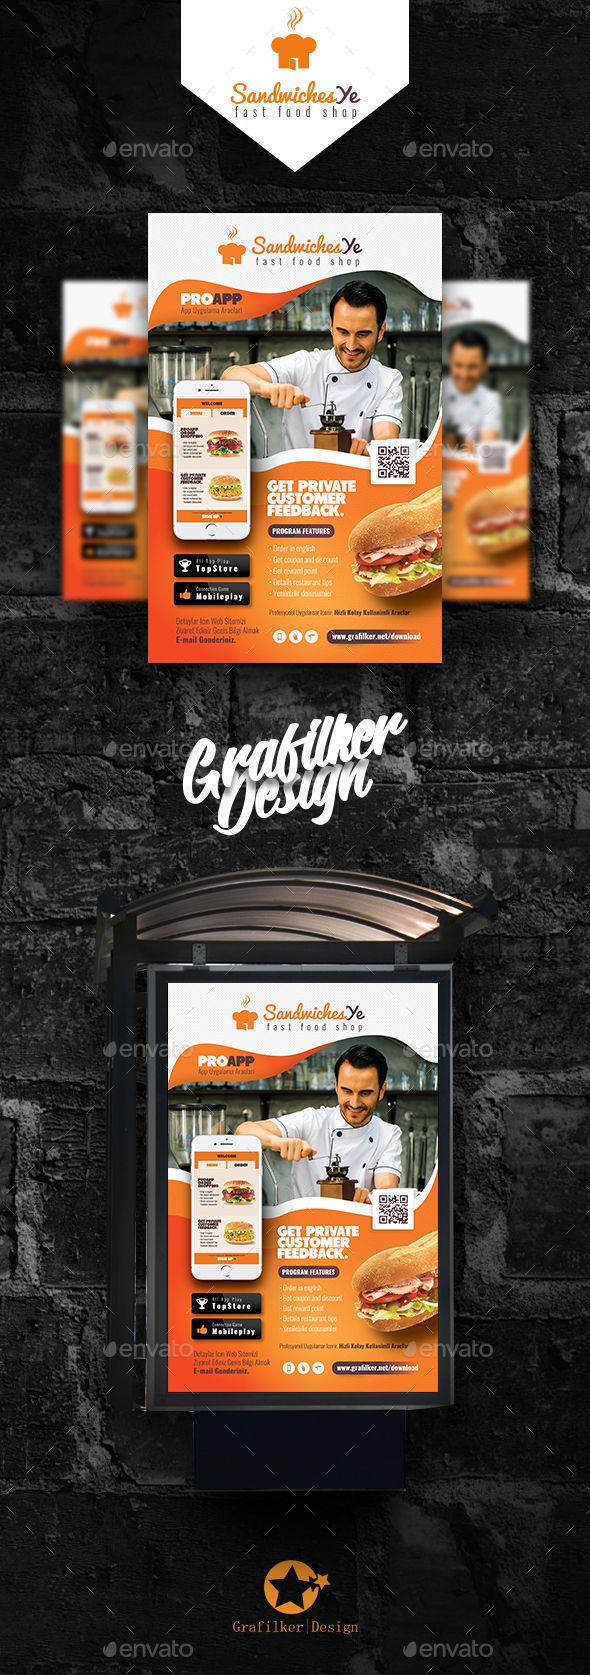 Mobile App Poster Templates - Signage Print Templates